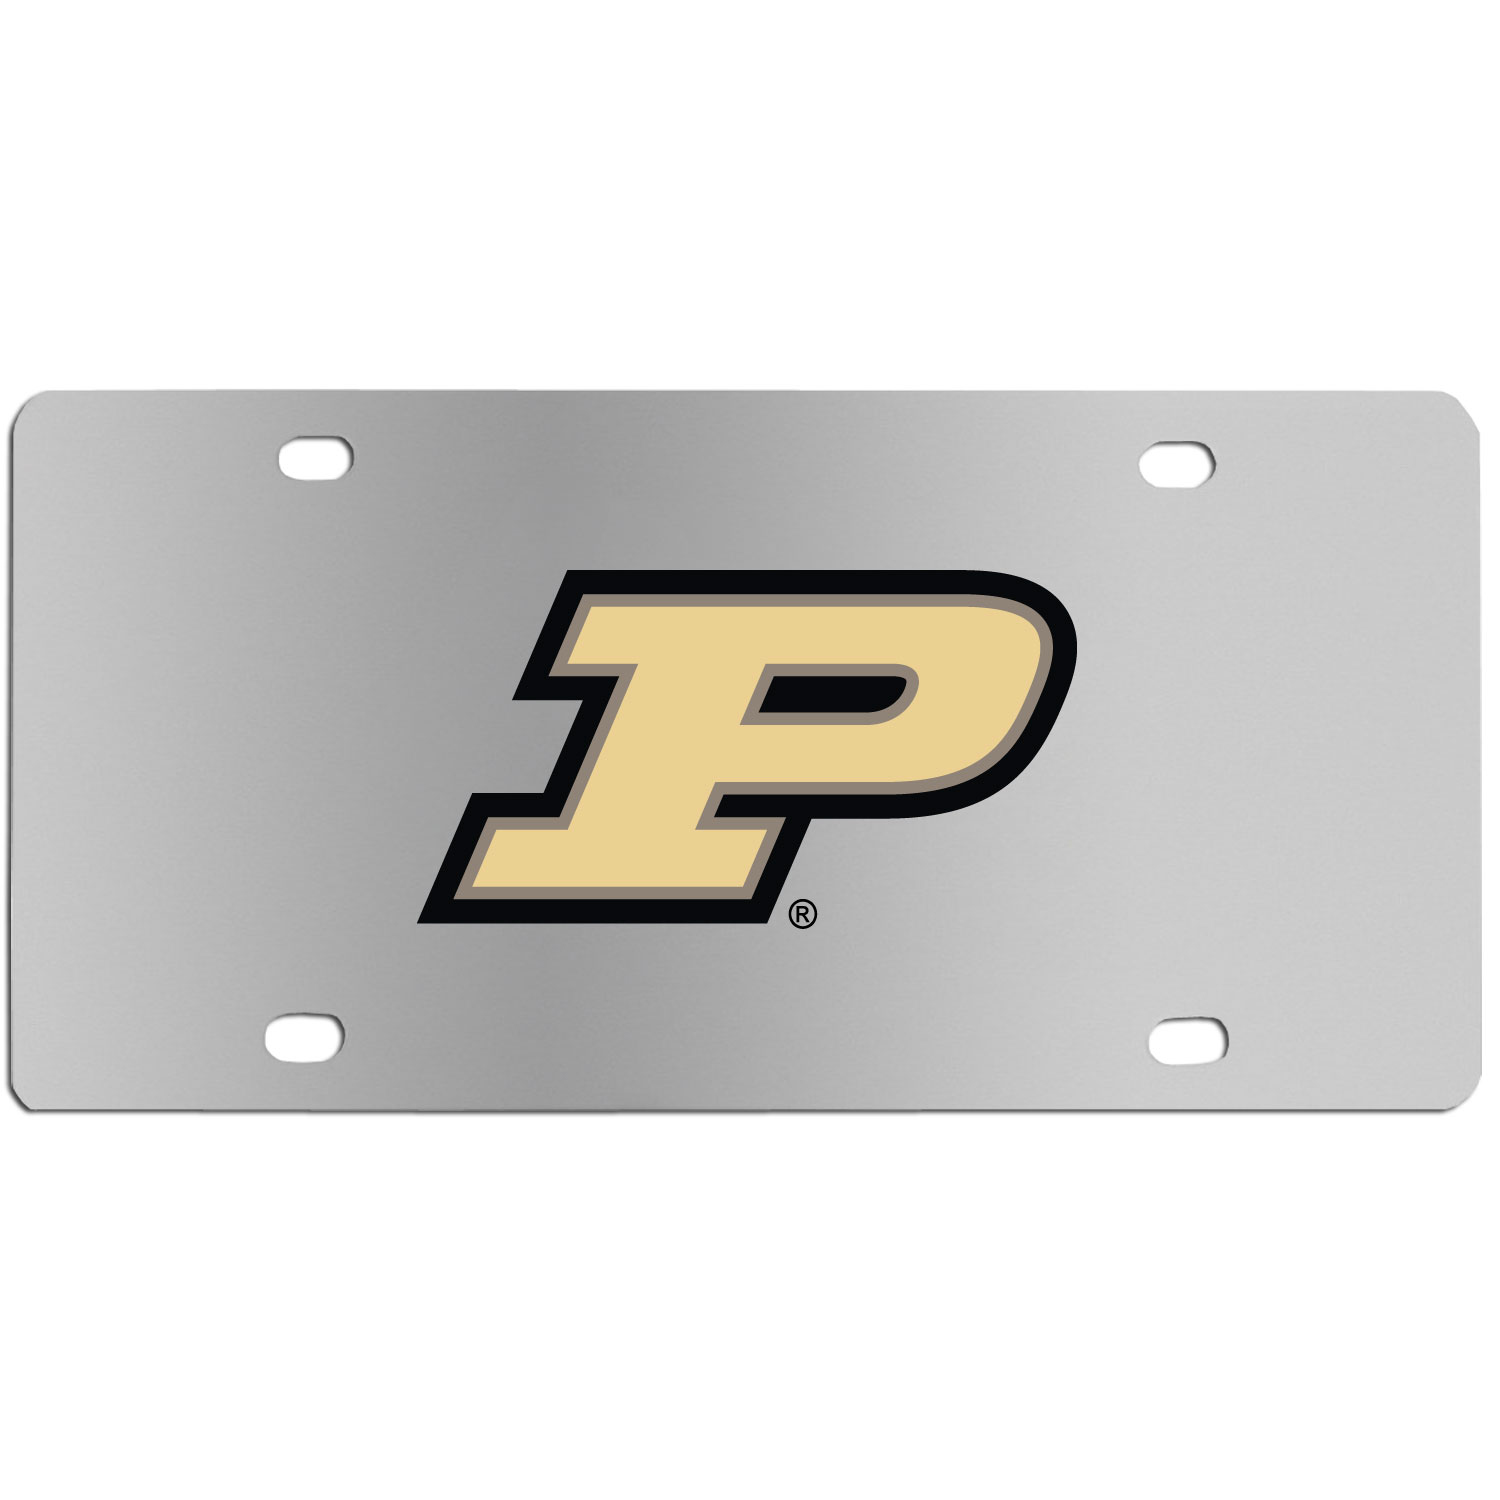 Purdue Boilermakers Steel License Plate Wall Plaque - This high-quality stainless steel license plate features a detailed team logo on a the polished surface. The attractive plate is perfect for wall mounting in your home or office to become the perfect die-hard Purdue Boilermakers fan decor.